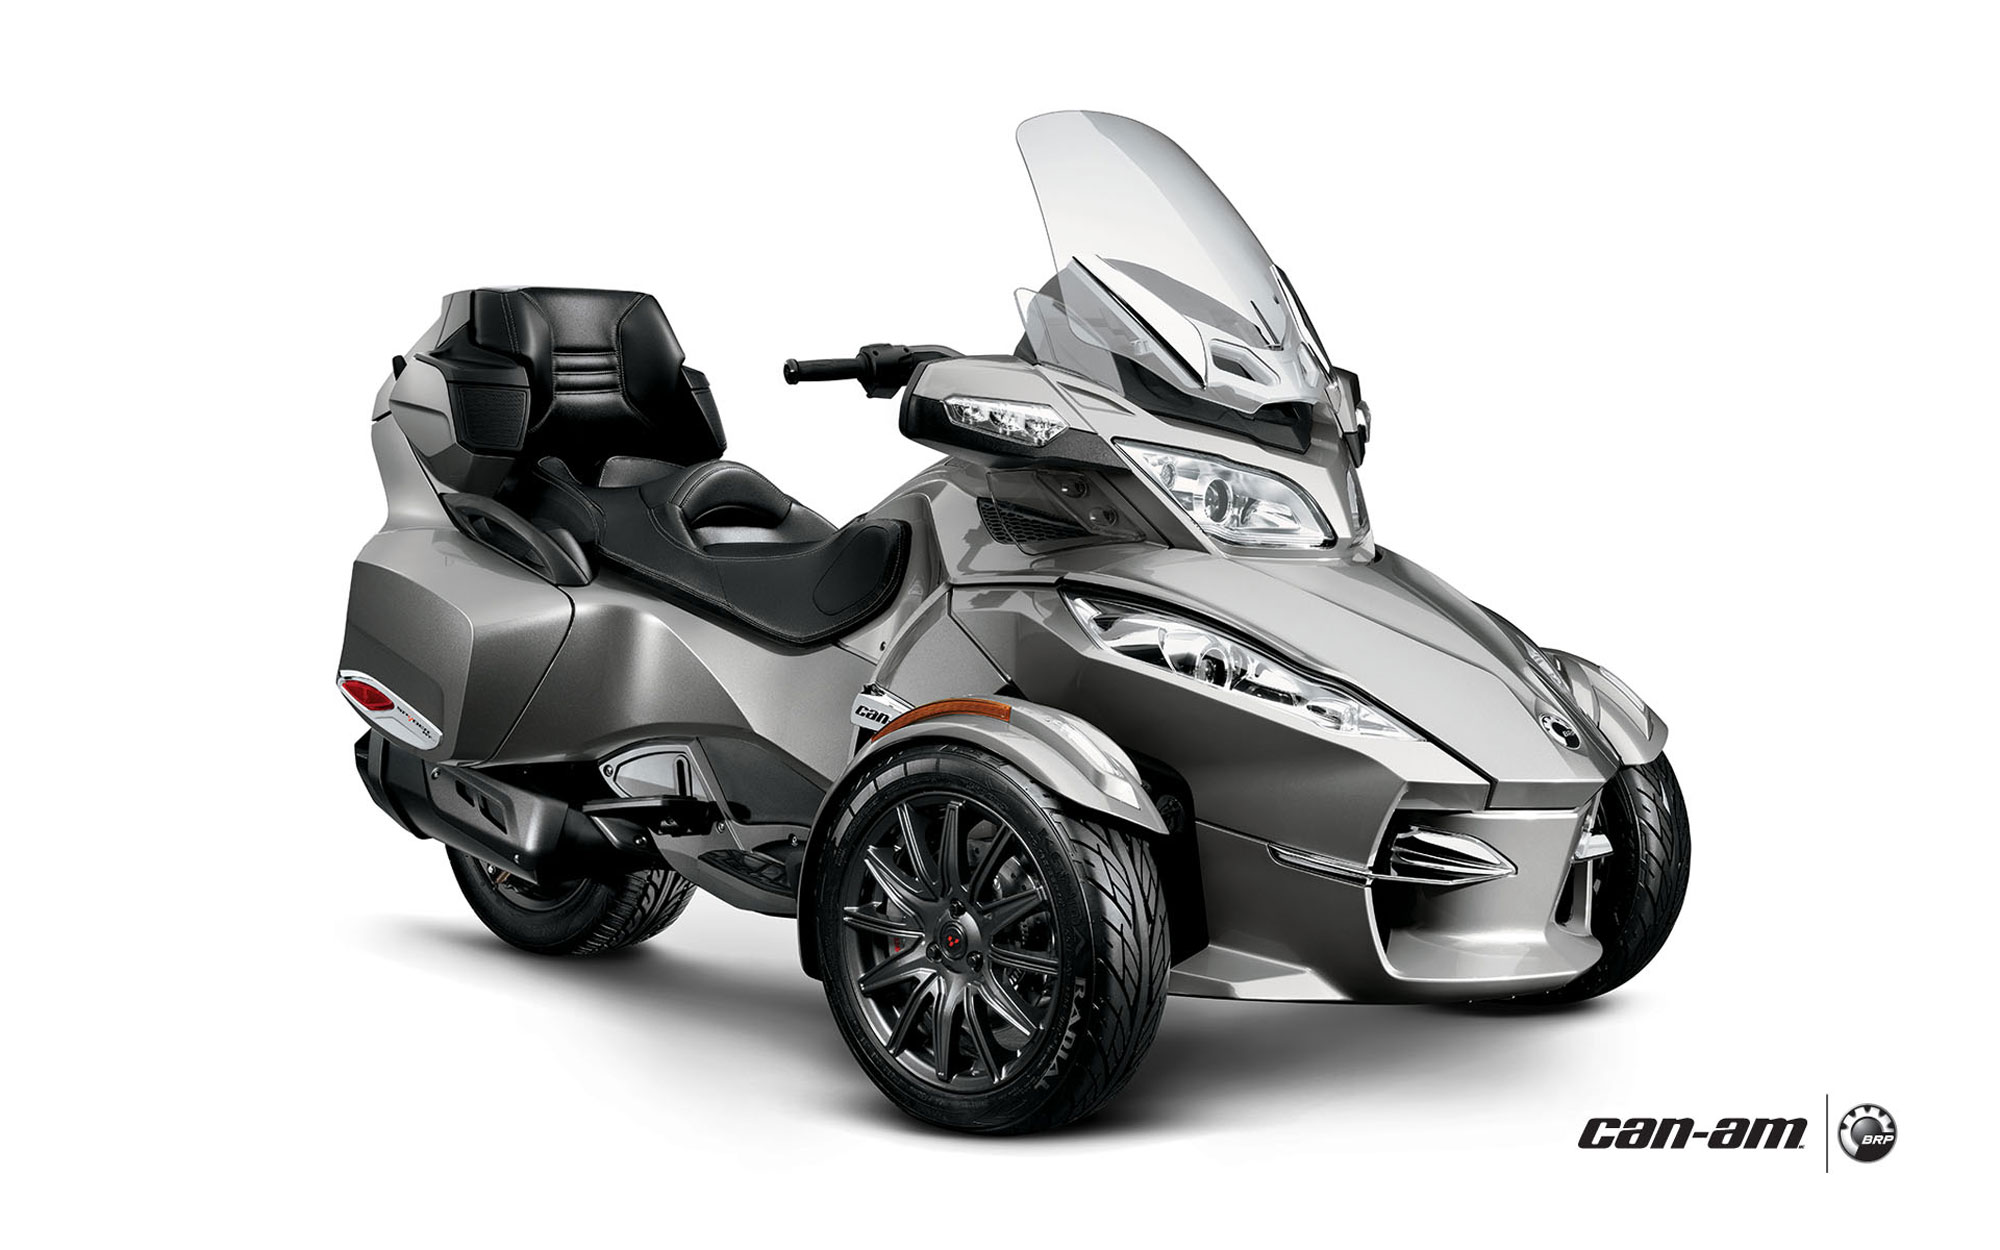 2013 can am spyder rt s review top speed rh topspeed com 2012 Can-Am Spyder Problems 2013 Can-Am Spyder RSS